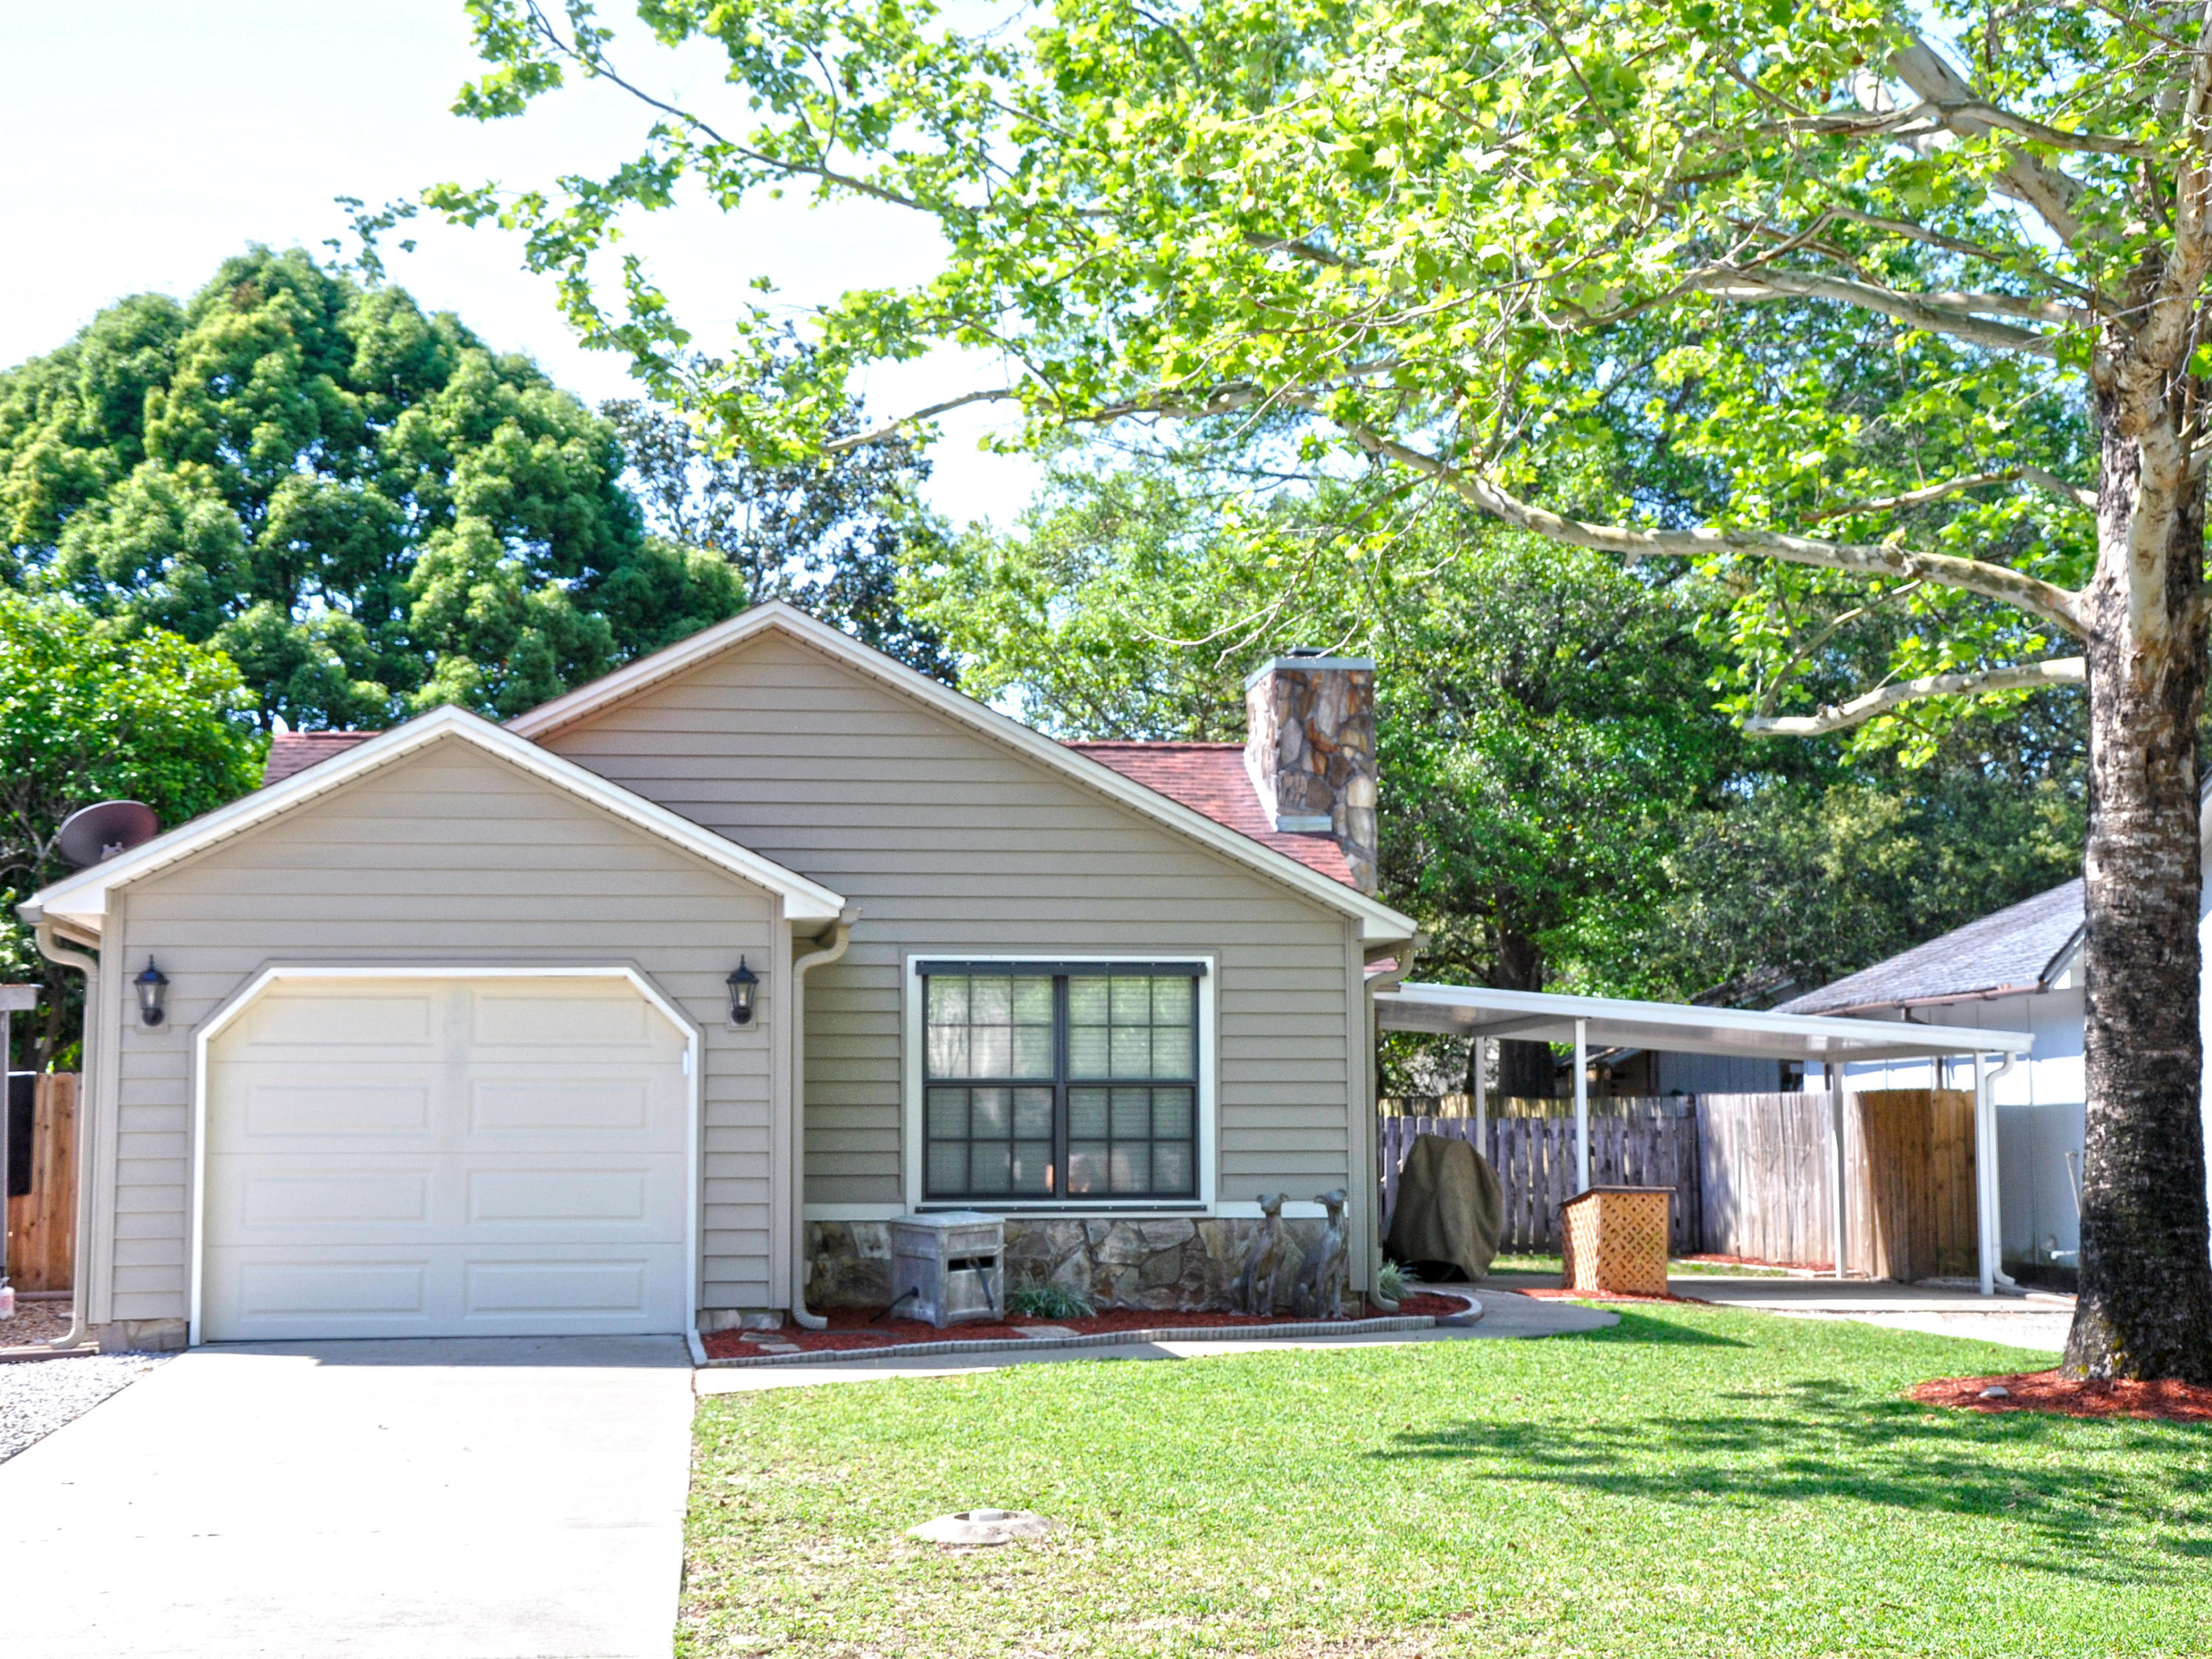 205  McKinley Street, Niceville in Okaloosa County, FL 32578 Home for Sale